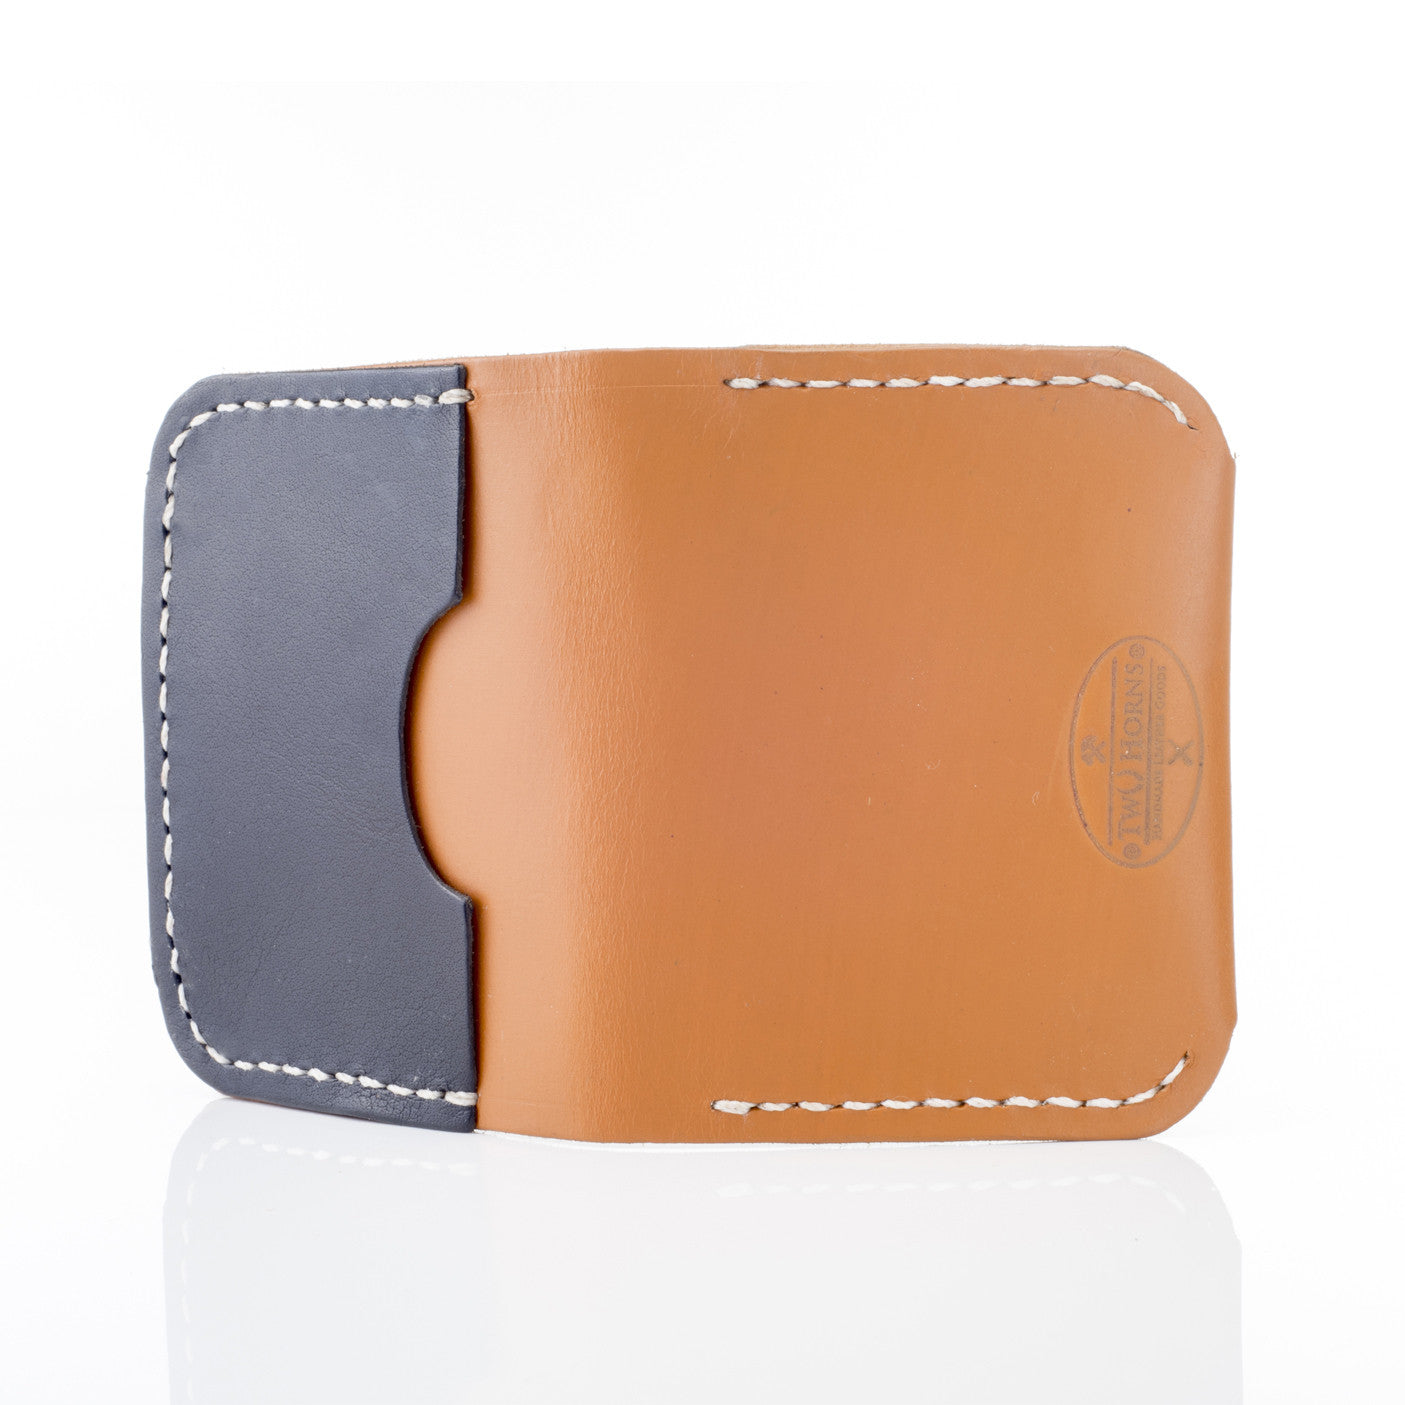 3 SLIT WALLET - Two Horns